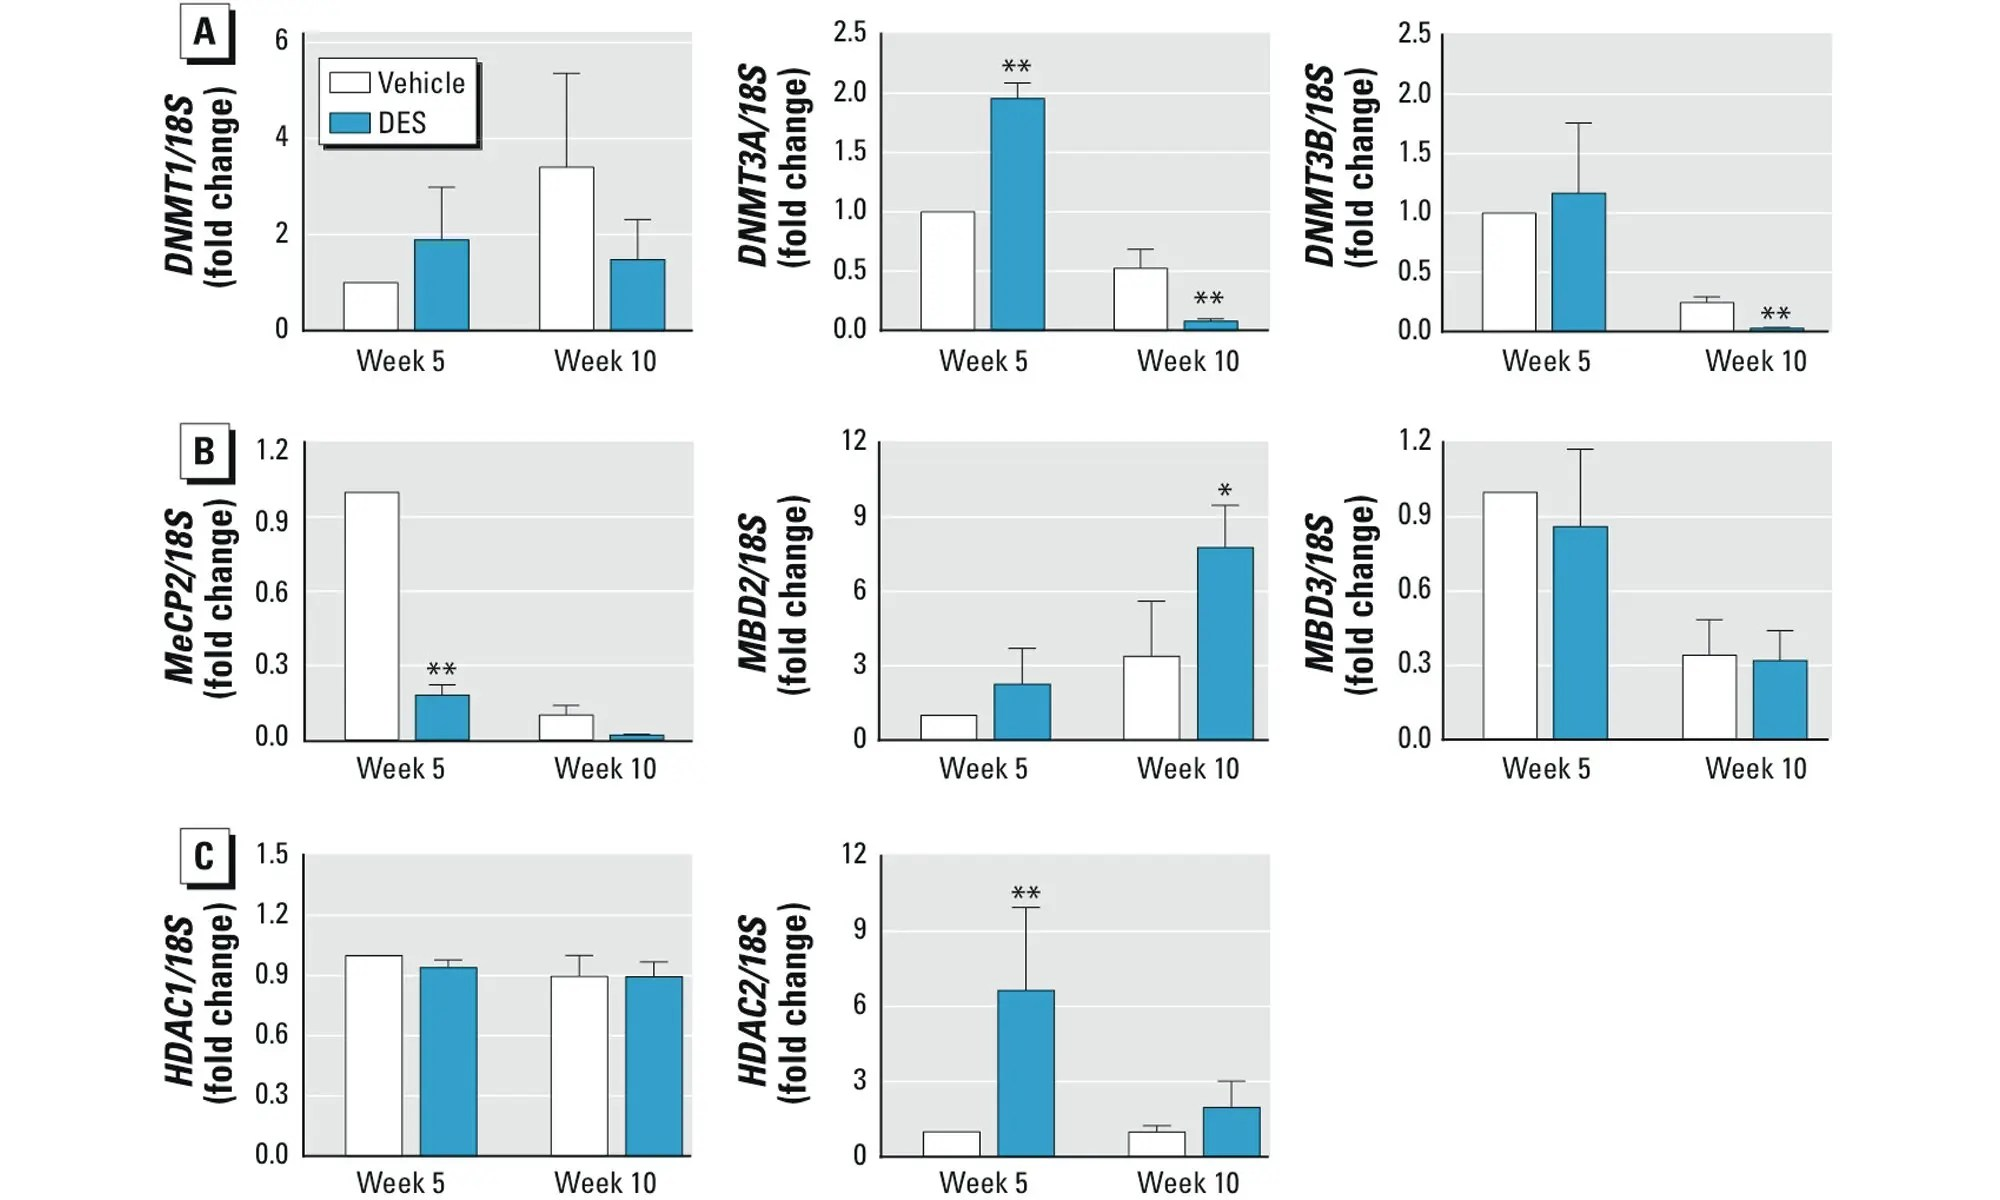 image of Effect of neonatal DES exposure on Svs4 (A) or Ltf (B) gene expression in SVs of mice 10 weeks after treatment with vehicle or DES